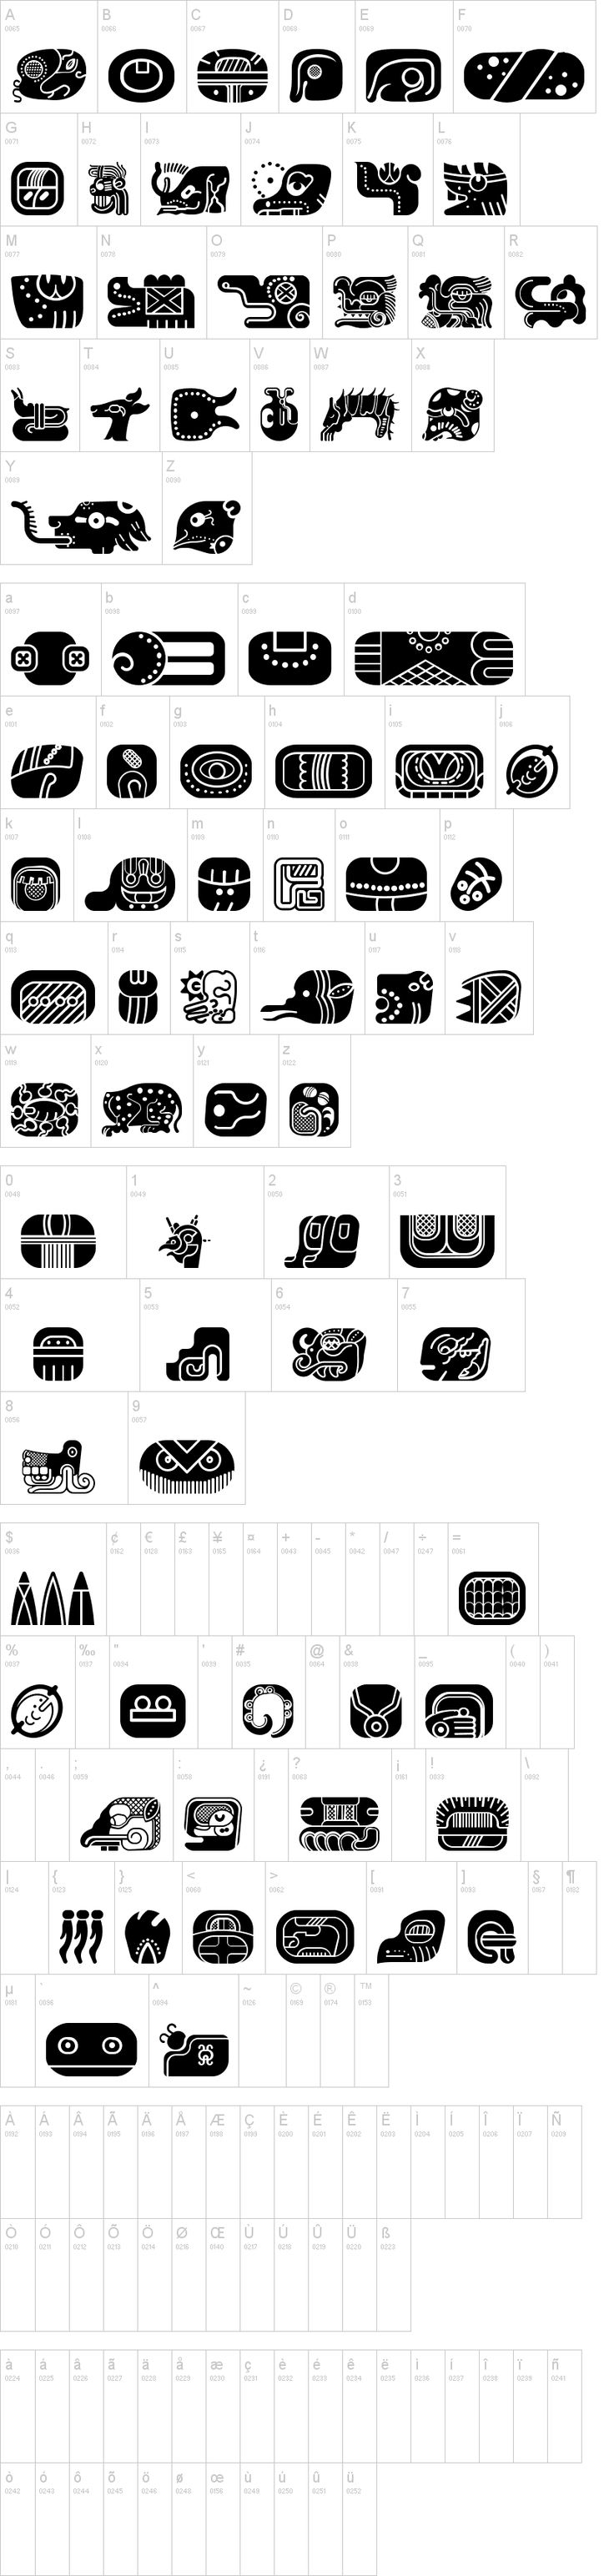 Mayan Glyphs Paper Hand Drawn Patterns Pinterest Mayan